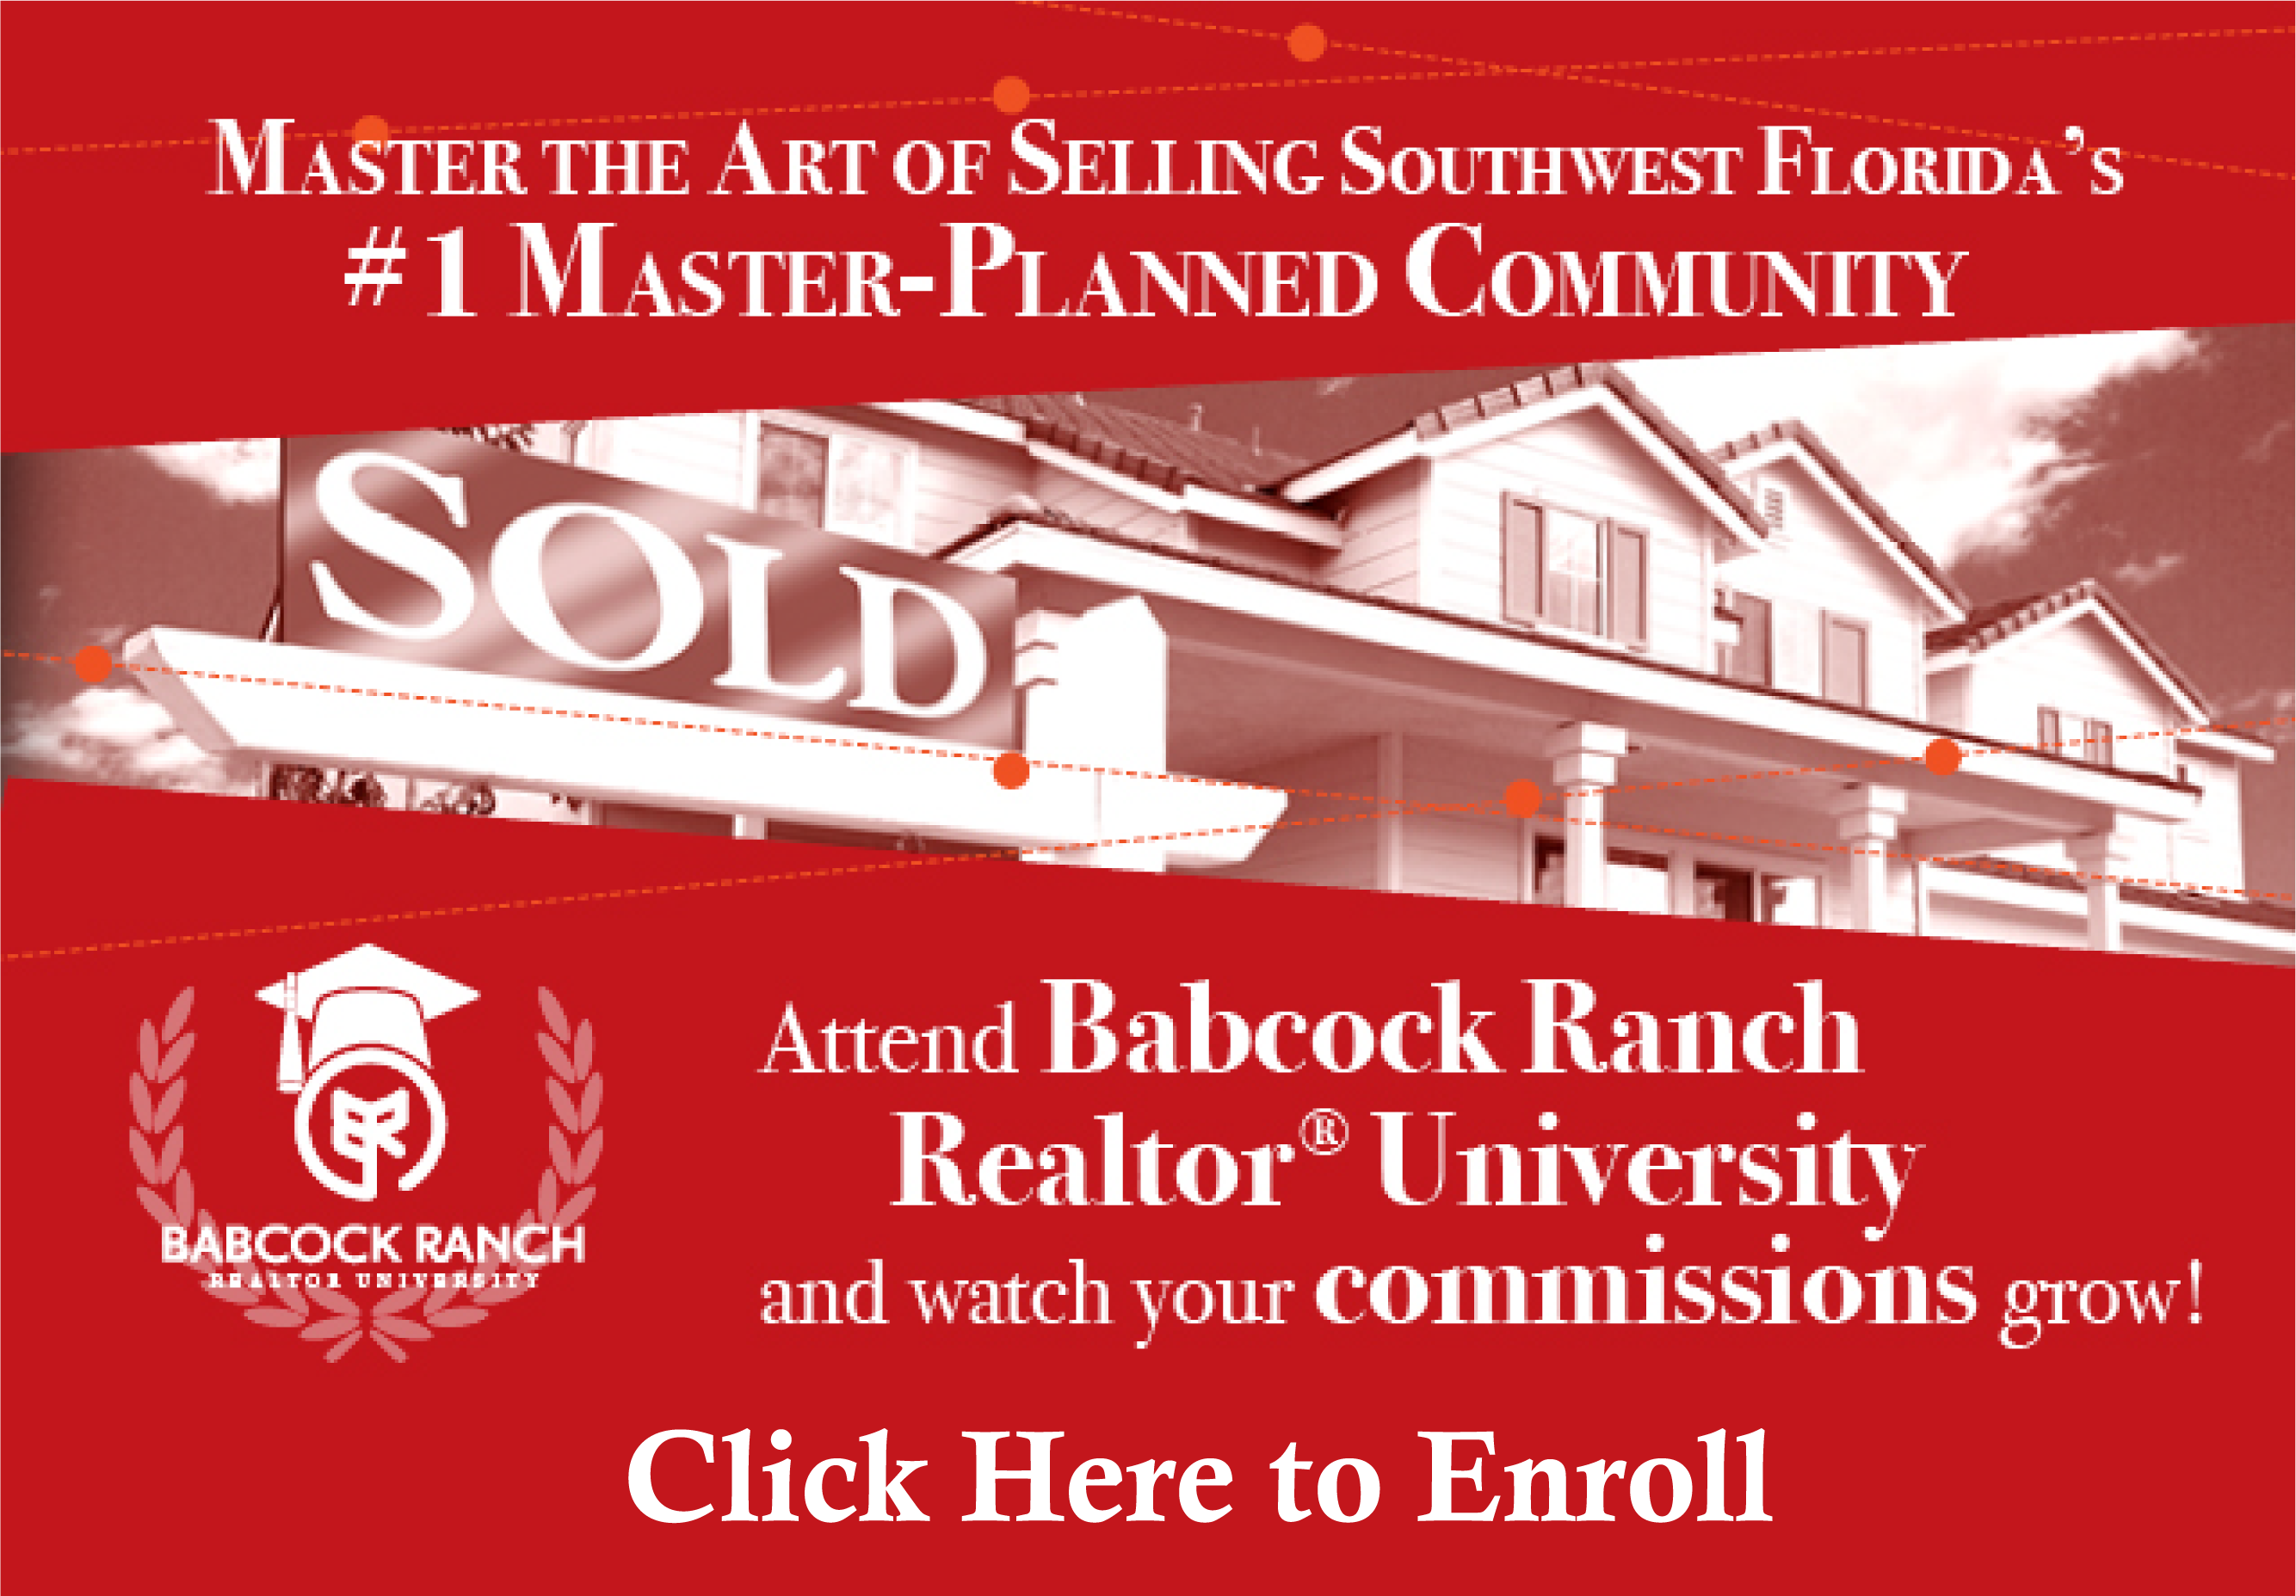 Click here to enroll in Babcock Ranch University